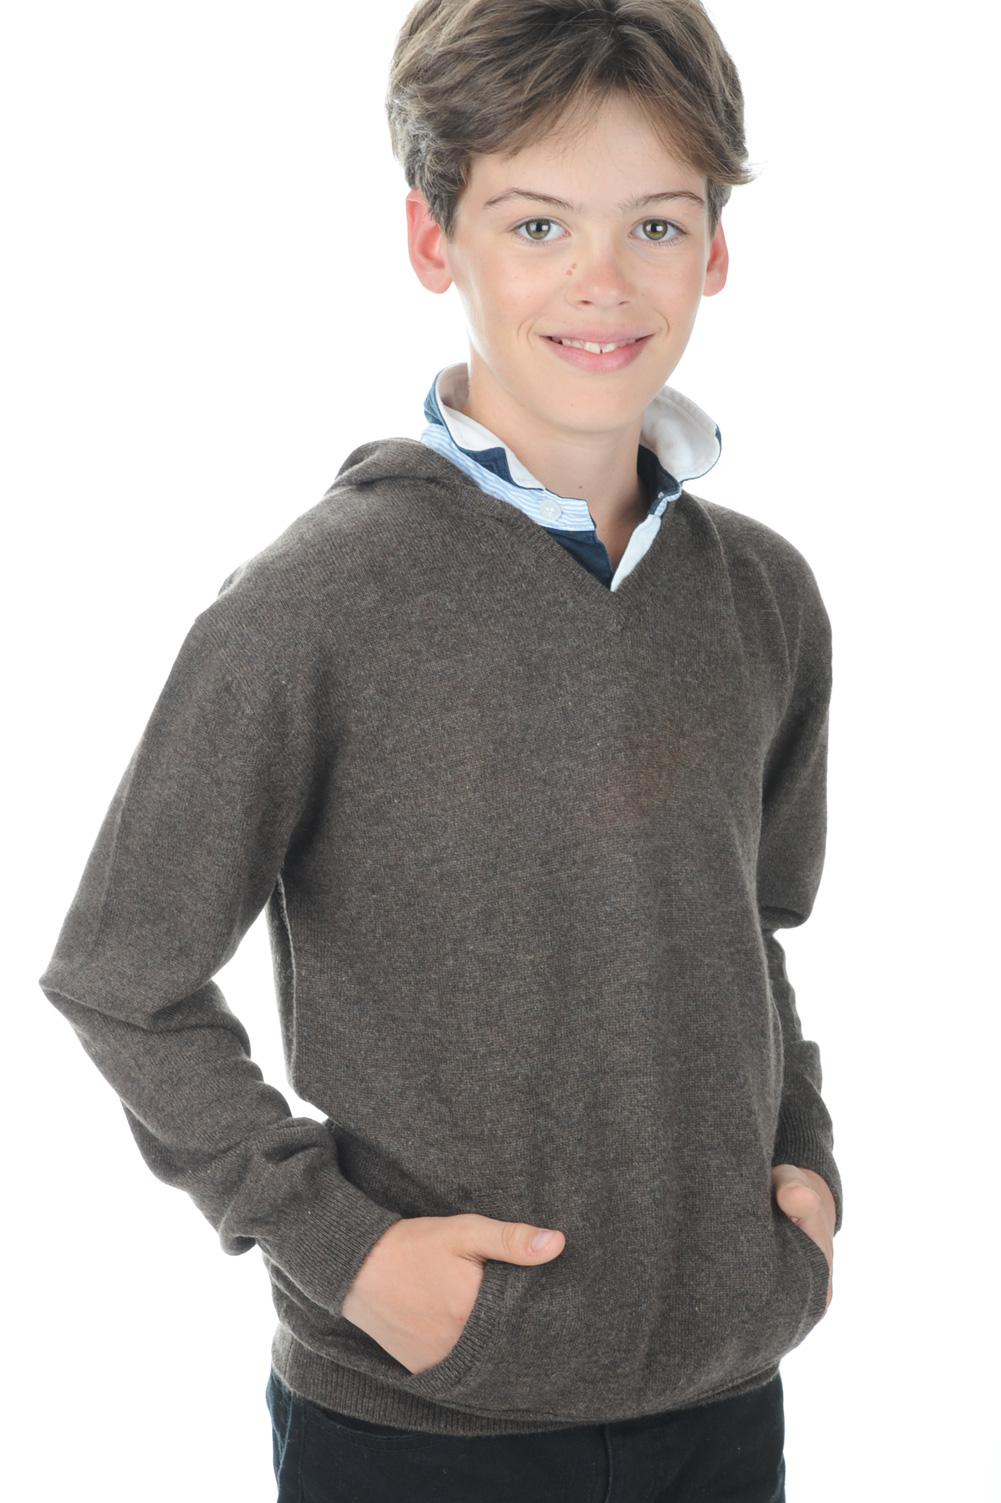 cashmere uomo scollo a v cloclo boy marrone chine 6